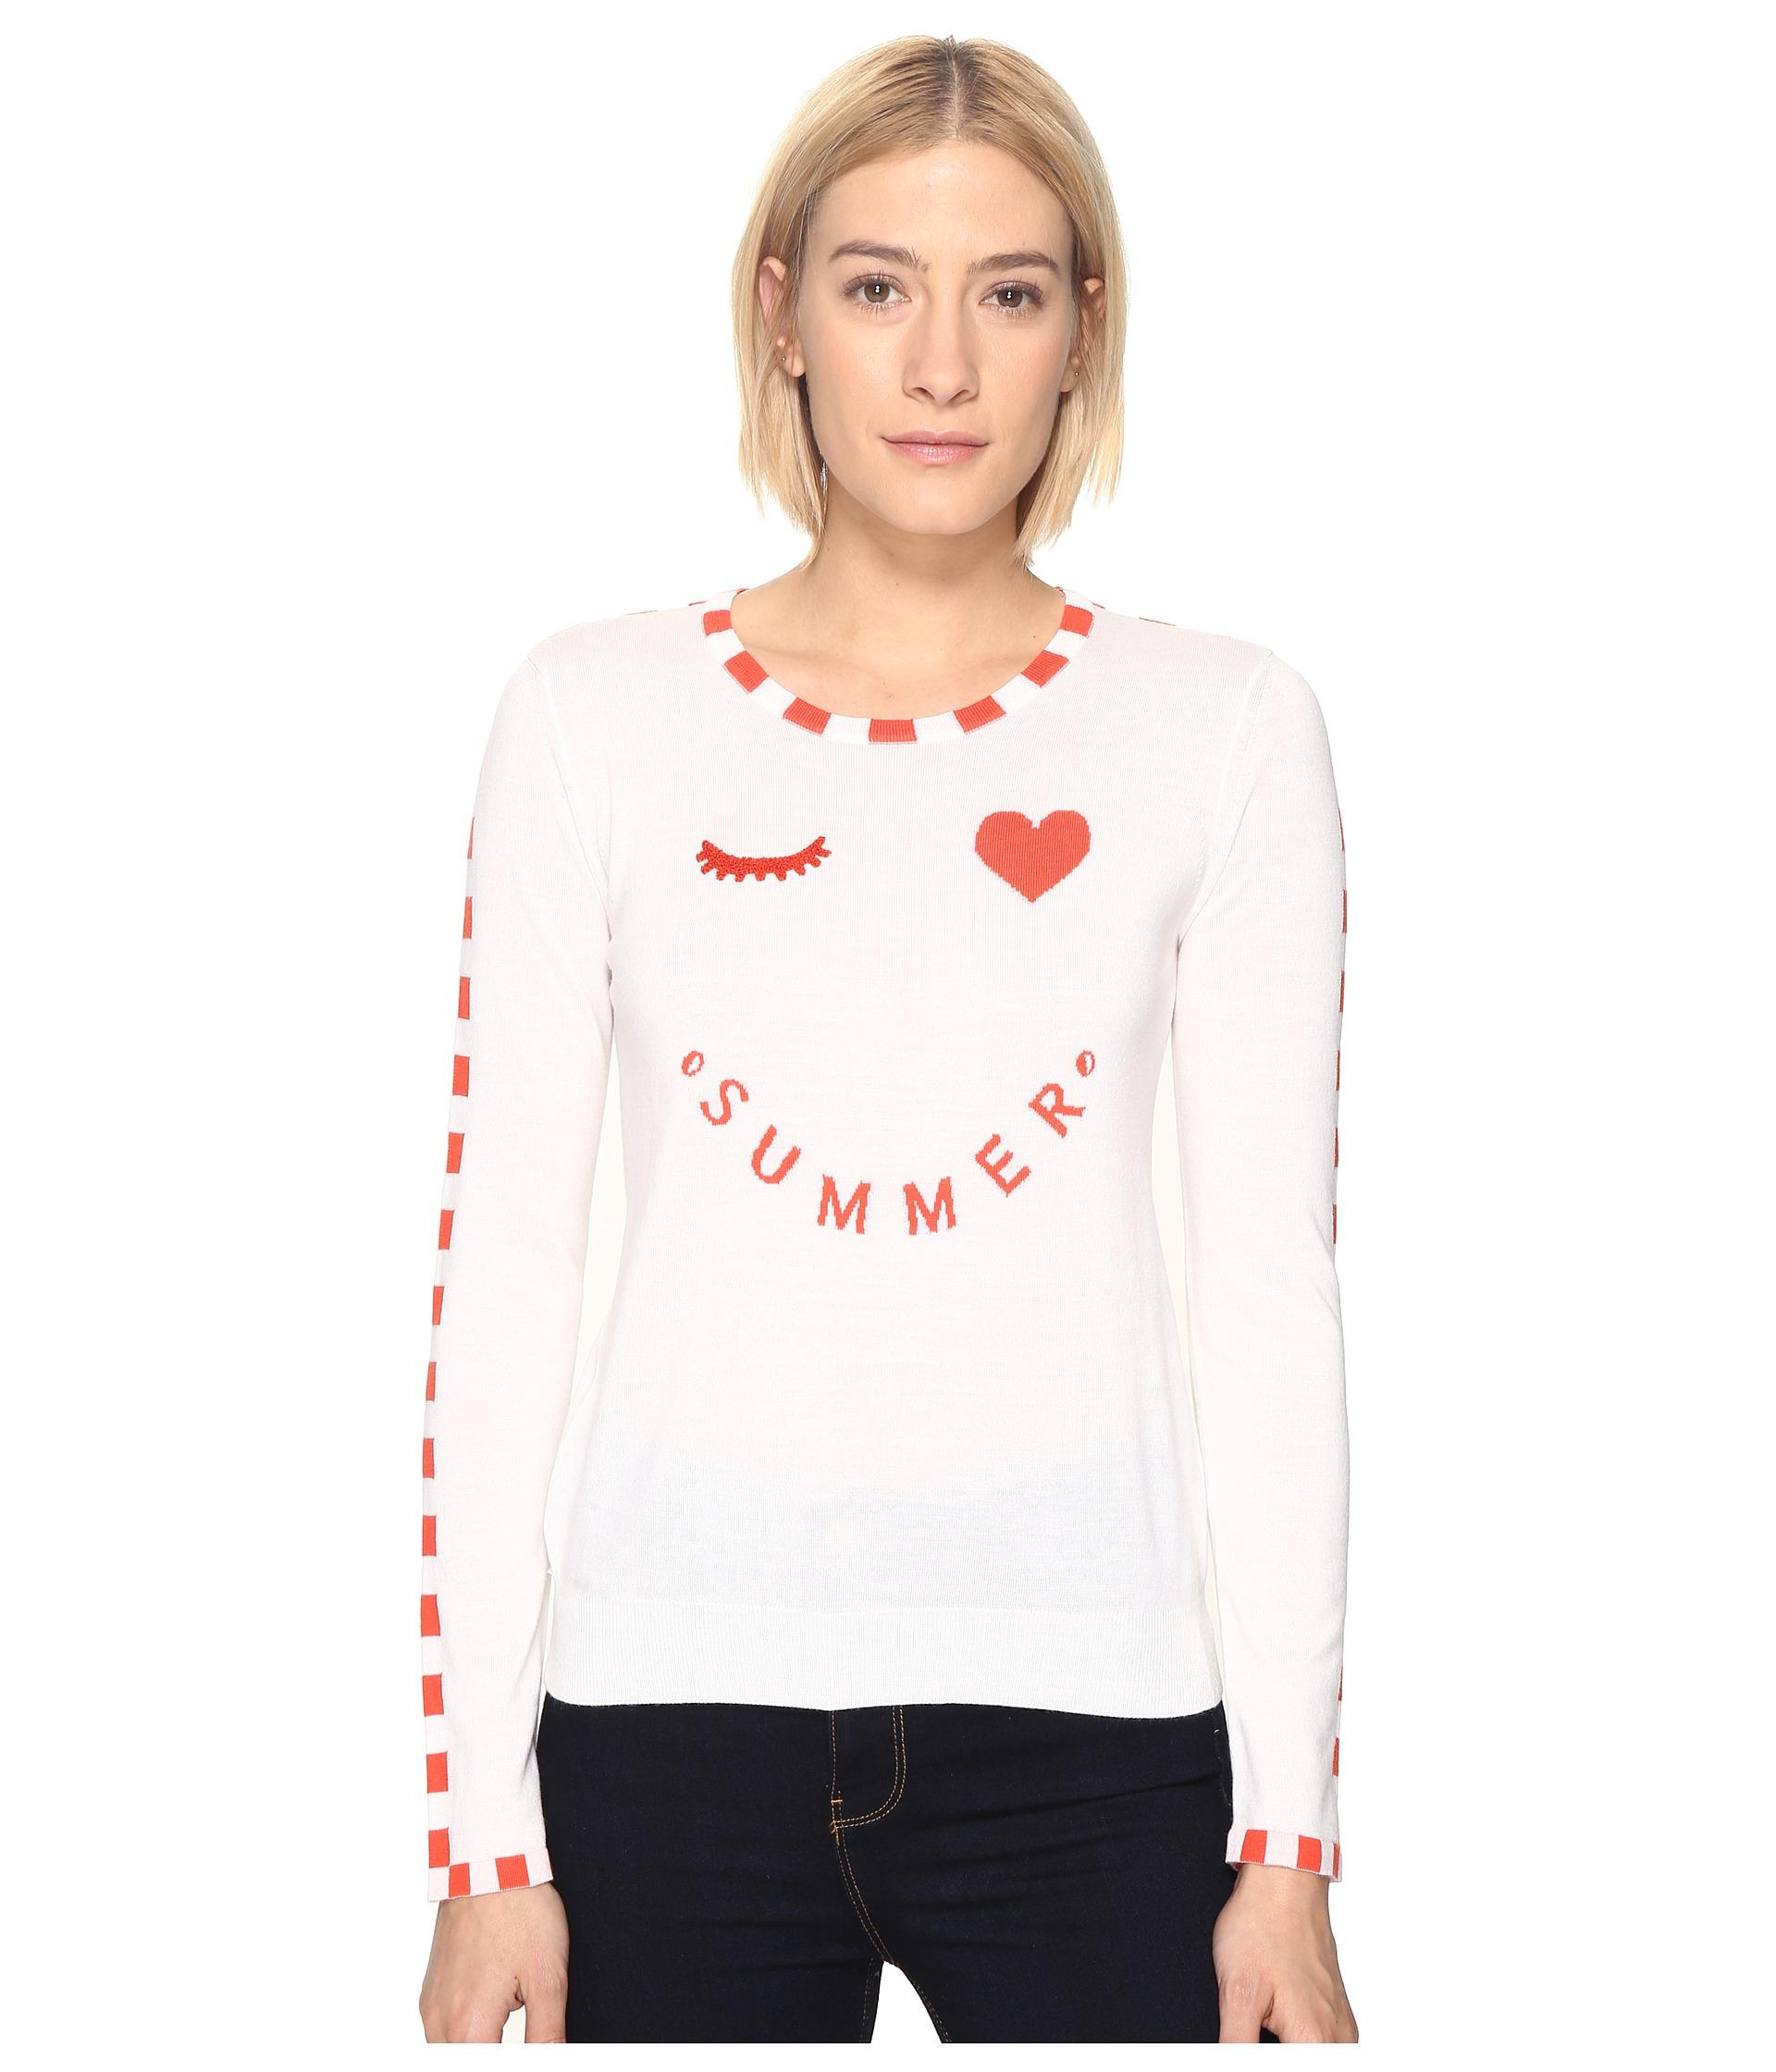 Paul smith Summer Sweater in White - Save 25% | Lyst